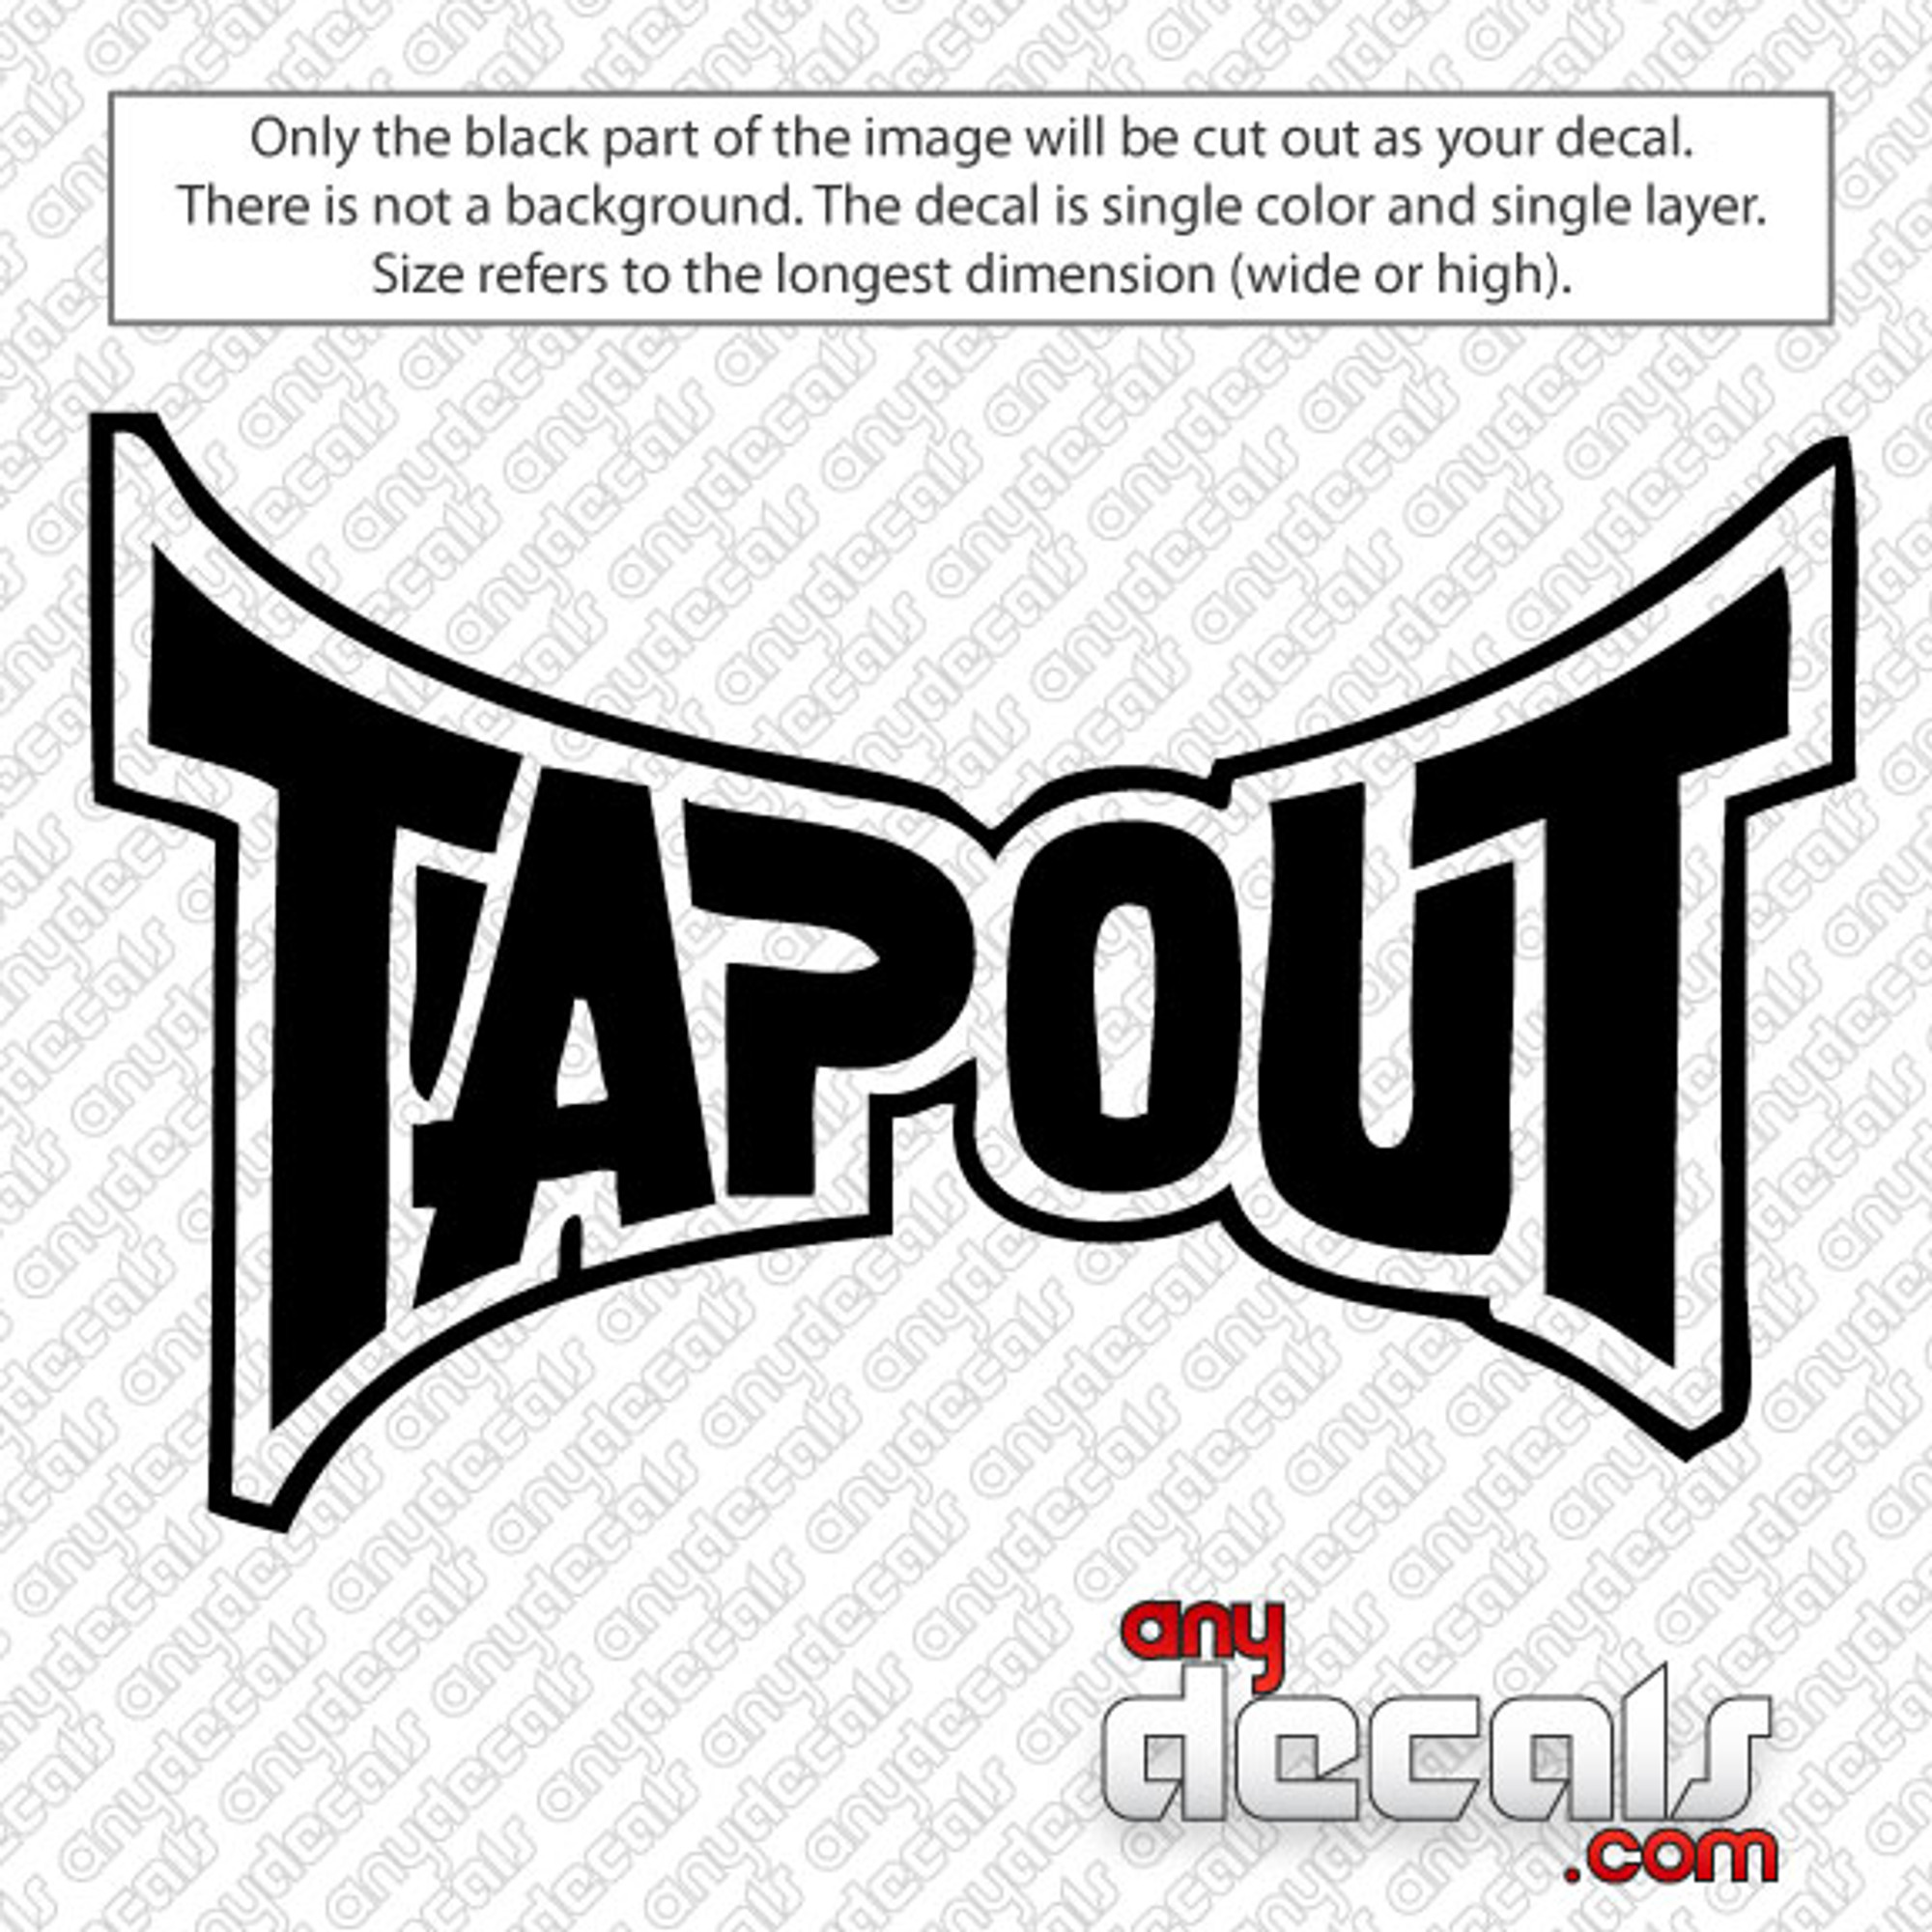 Car Decals Car Stickers Tapout Logo Car Decal